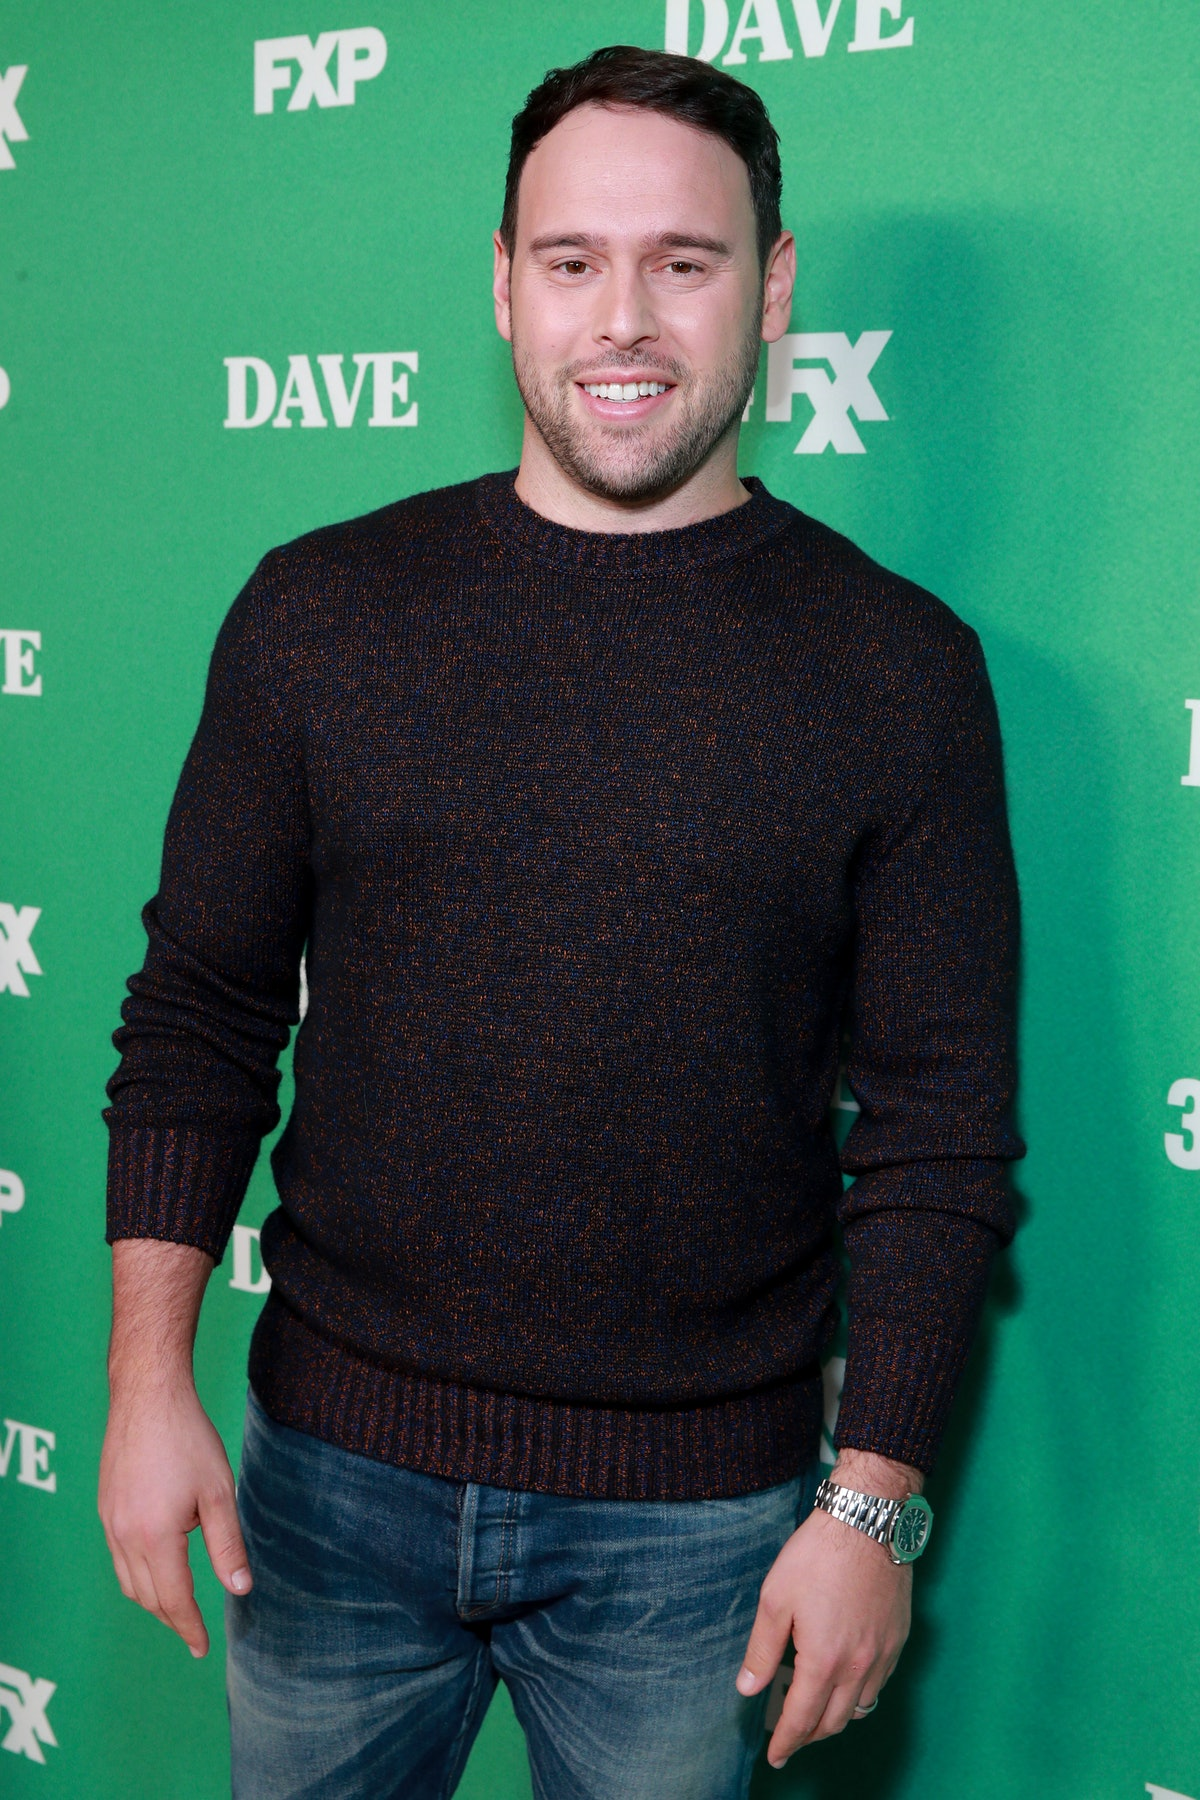 """Scooter Braun attends the premiere of FXX's """"Dave"""" at Directors Guild Of America on February 27, 2020 in Los Angeles, California. (Photo by Rich Fury/Getty Images)"""